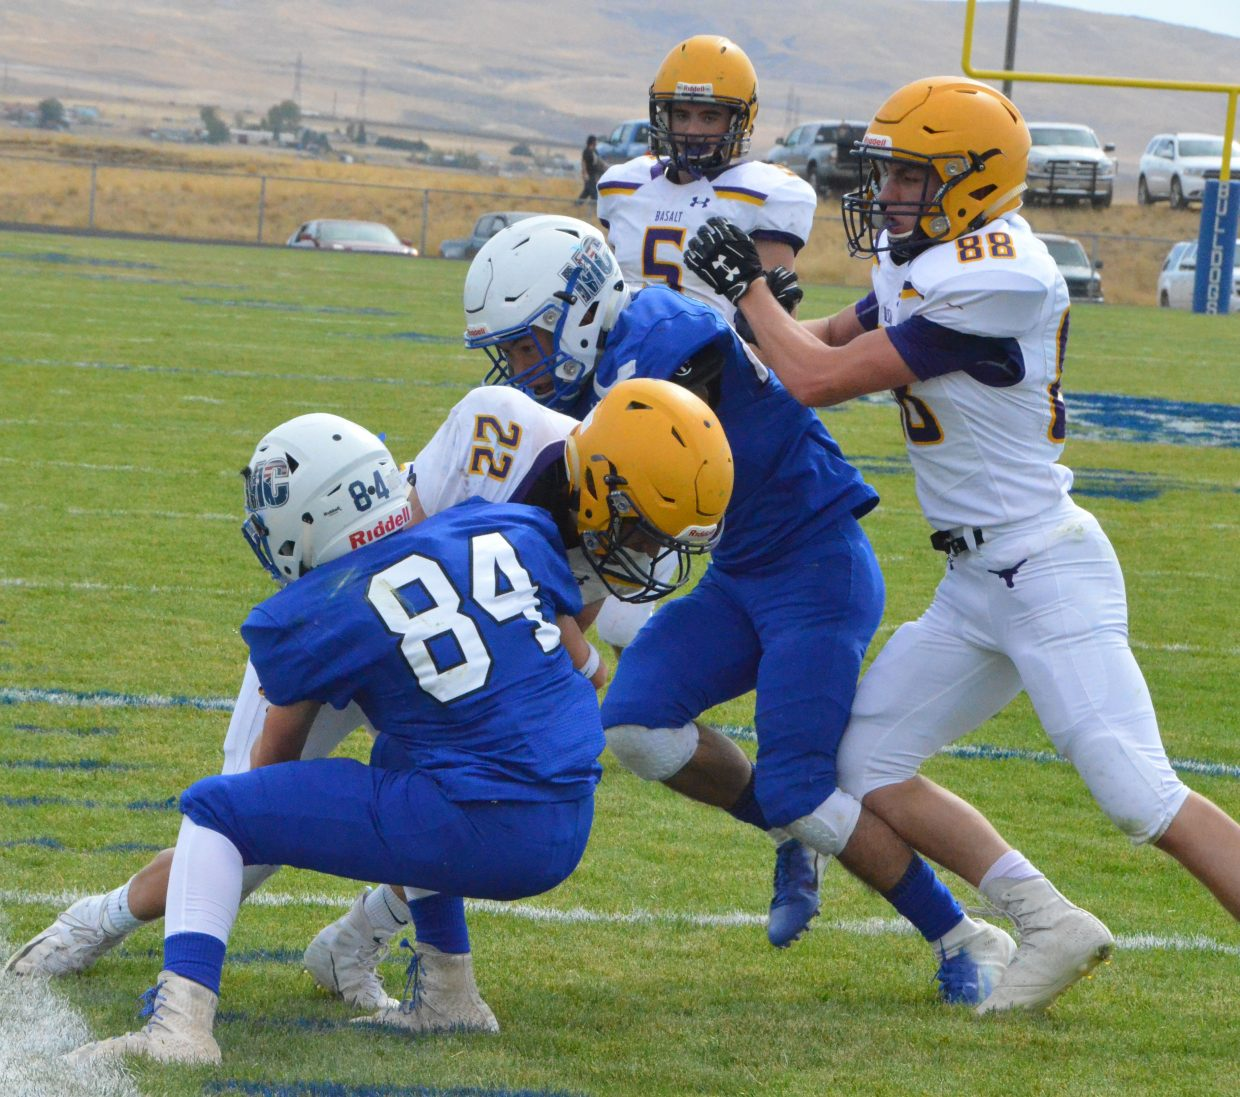 Moffat County High School's Dagan White and Josh Teeter are both in for the stop against Jake Reardon during Saturday's Homecoming game with Basalt.